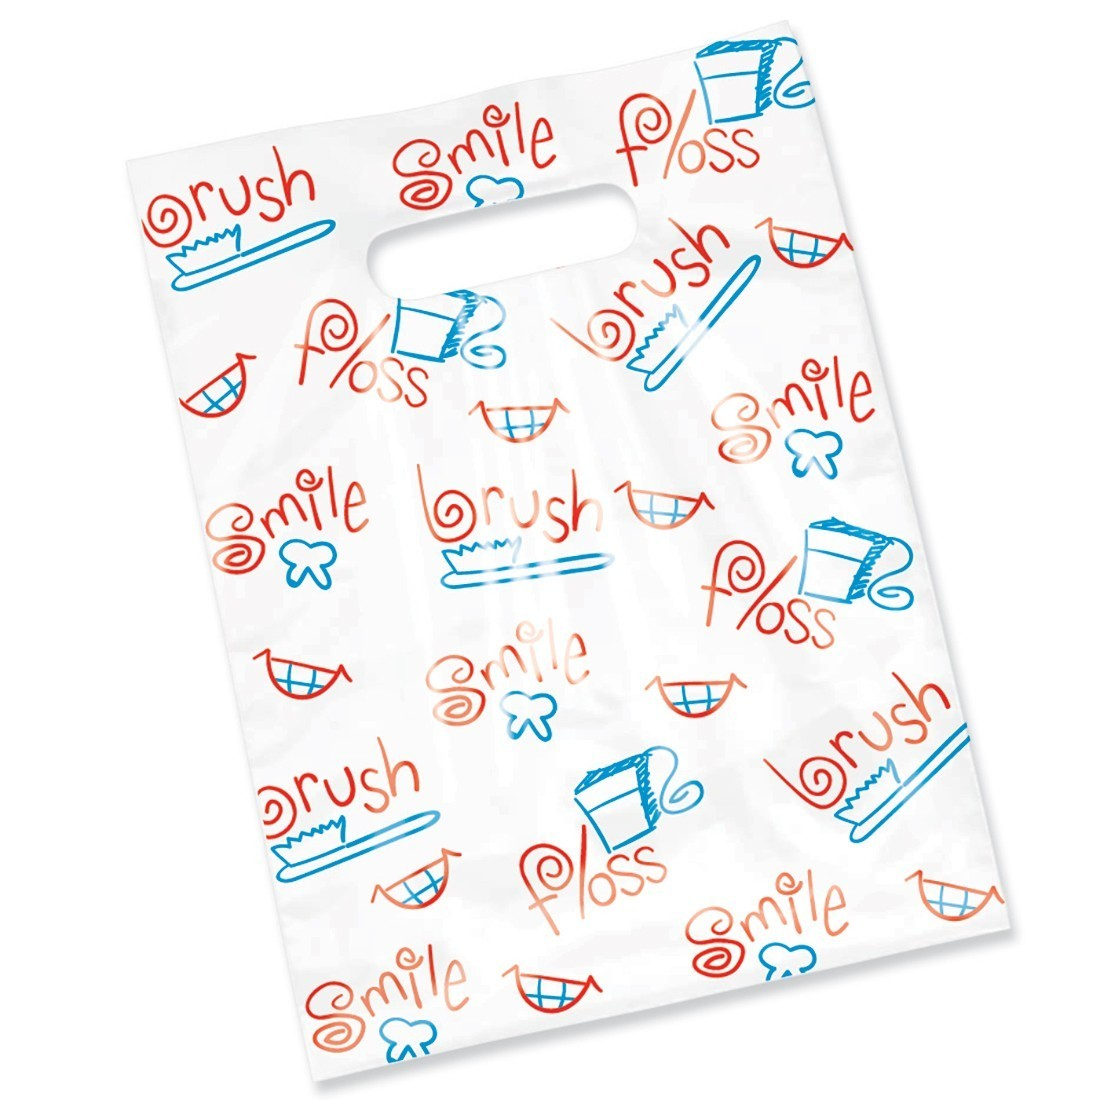 Large Scatter Brush, Floss, Smile Bags [image]